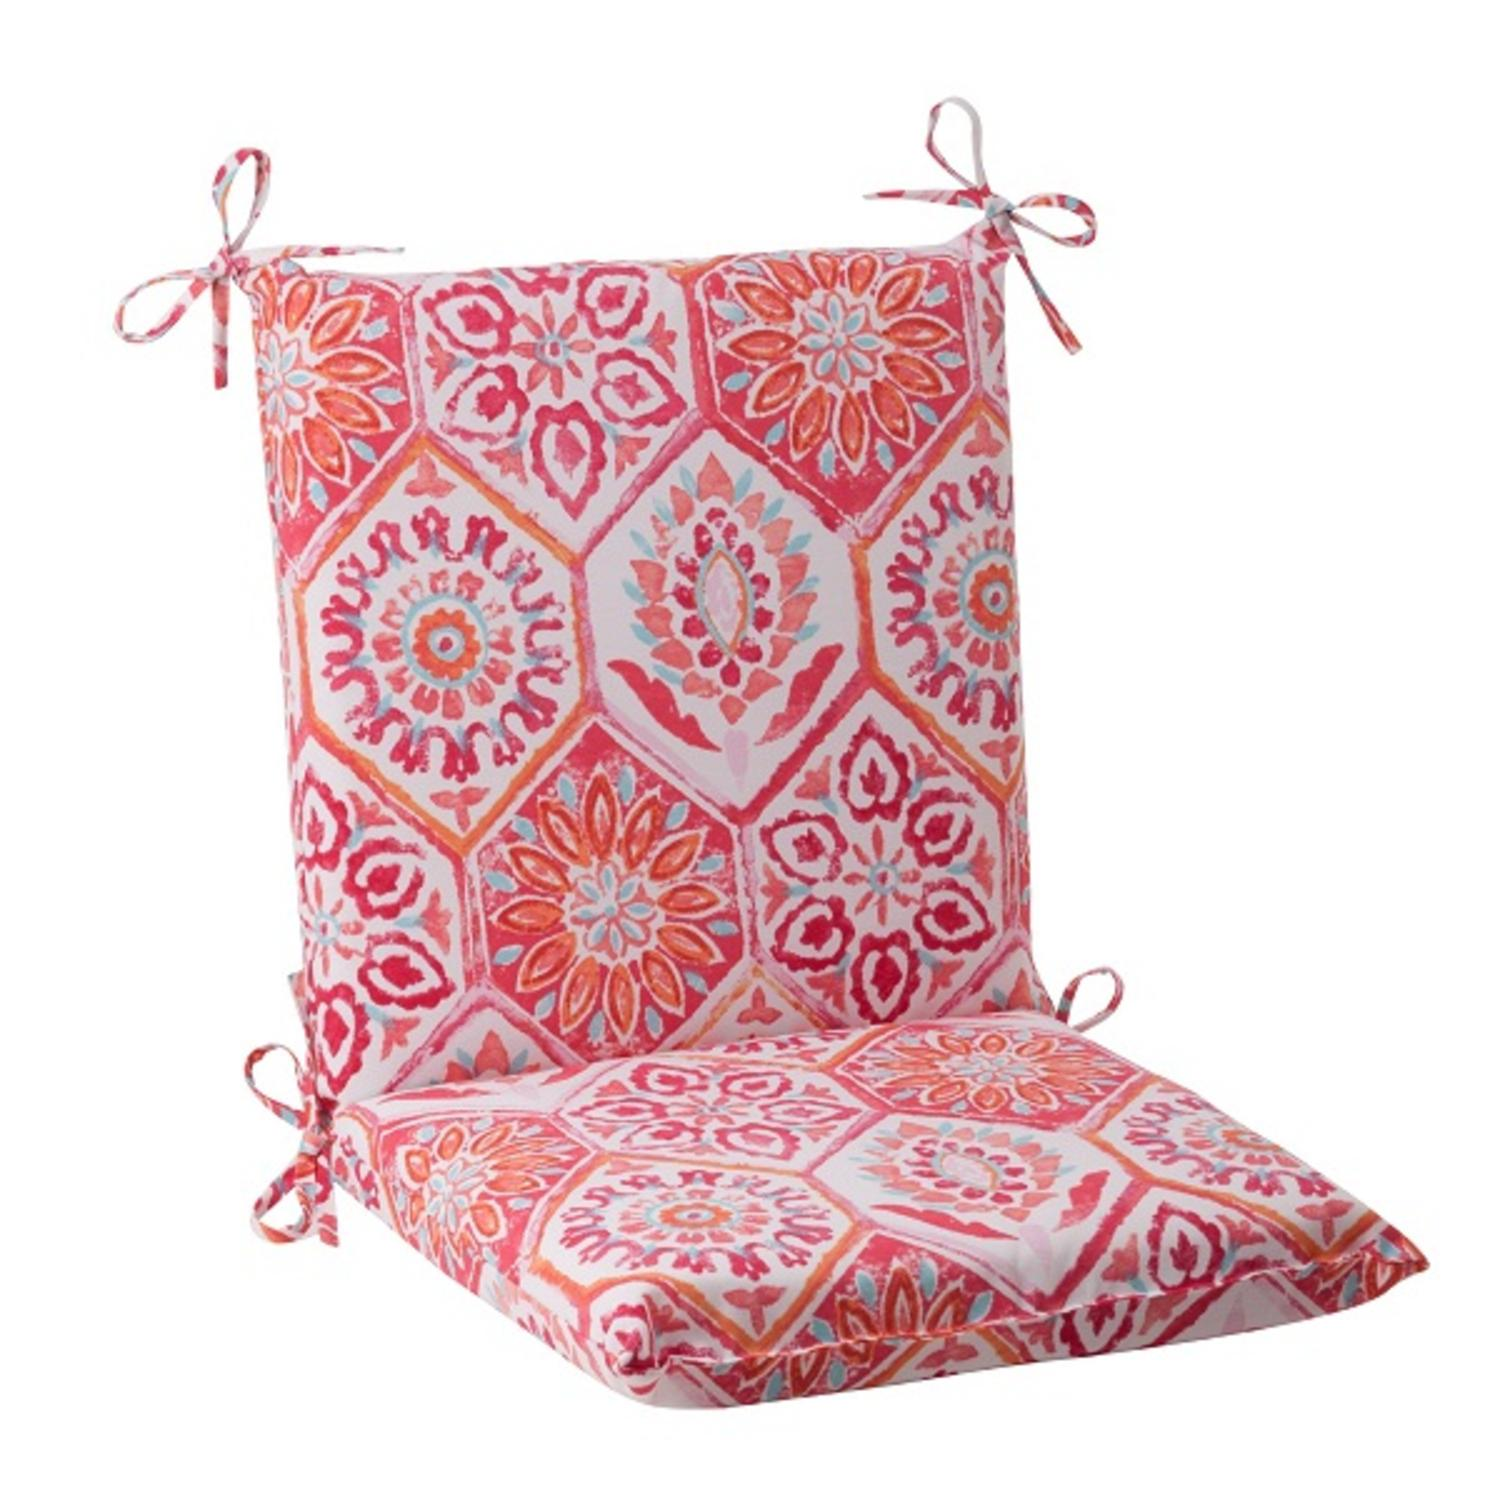 "36.5"" Pink Psychadelic Outdoor Patio Squared Chair Cushion"